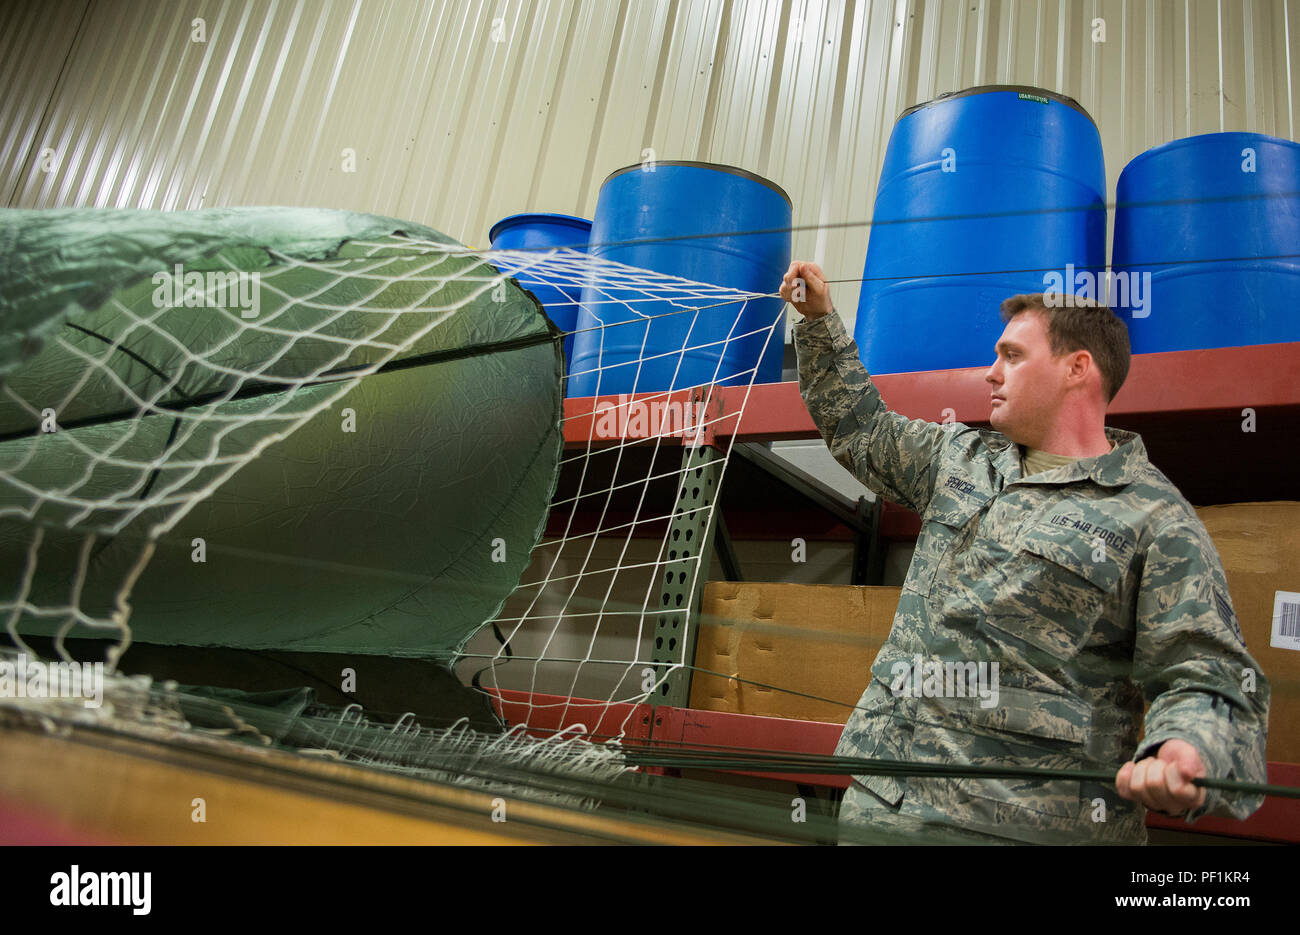 Staff Sgt. Justin Spencer, 919th Special Operations Logistics Readiness Squadron, sets up a parachute at Duke Field, Fla.  The parachutes are attached to 300-pound bundles and loaded onto aircraft so new loadmasters can perform their initial airdrop training and prior-qualified Airmen can maintain proficiency.  (U.S. Air Force photo/Sam King) - Stock Image